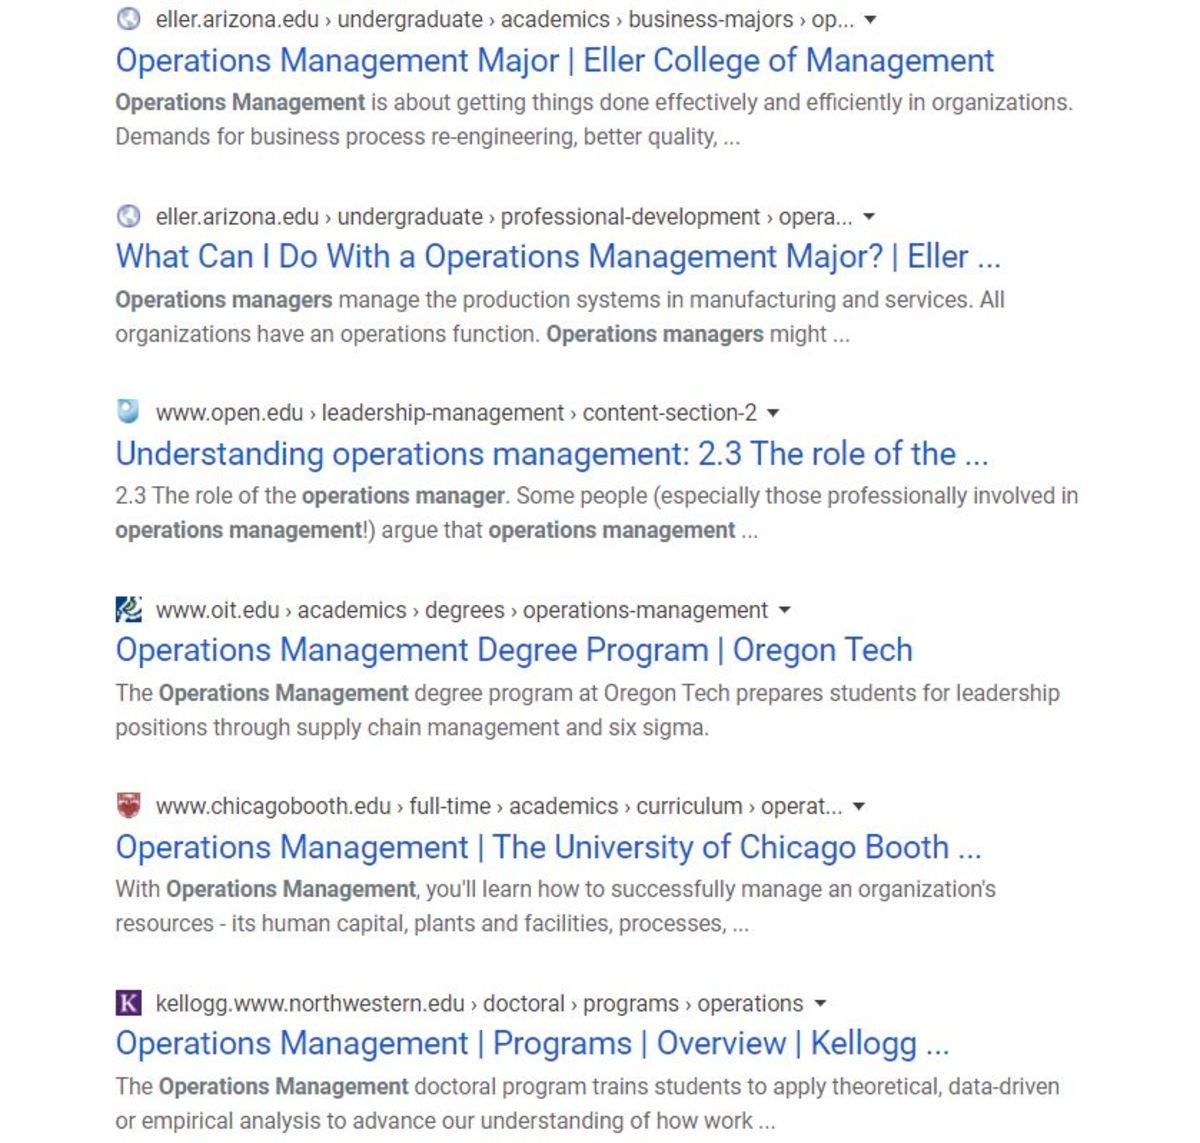 Here the Google site command is used to find all relevant results that can be found on the web sites of educational institutions for the search term operations management.